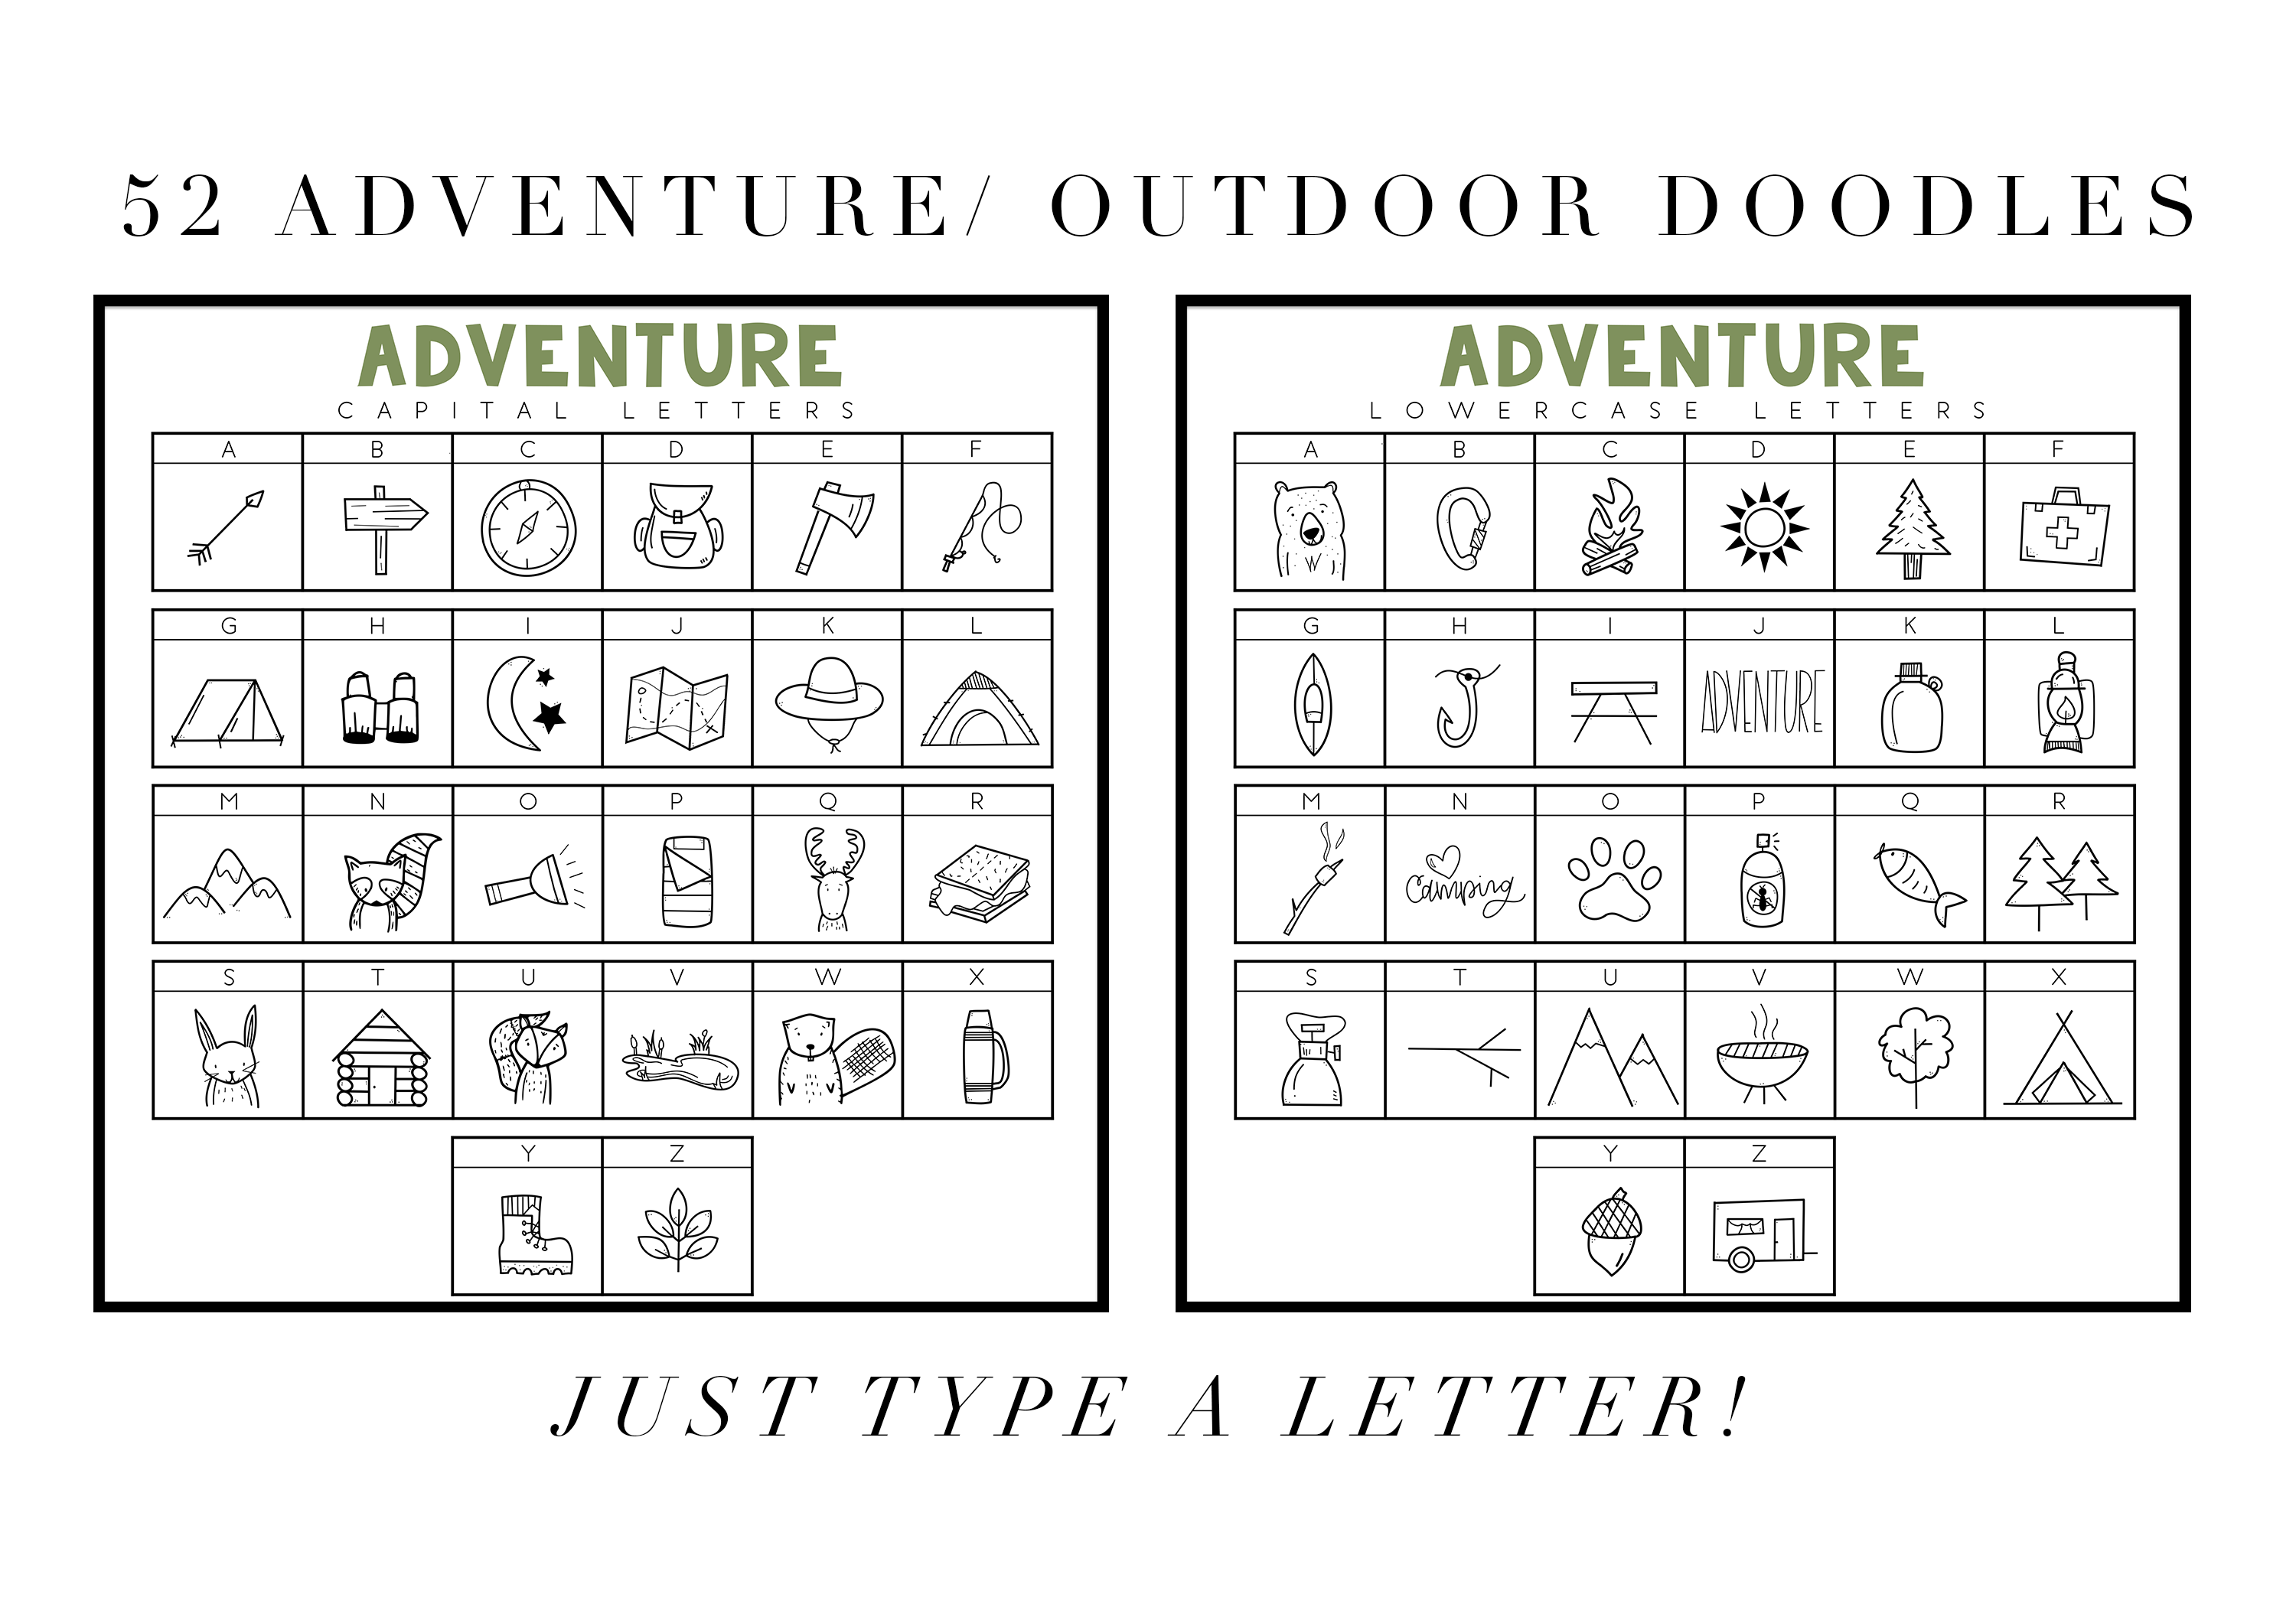 Adventure - A Camping & Outdoors Doodles Font example image 2